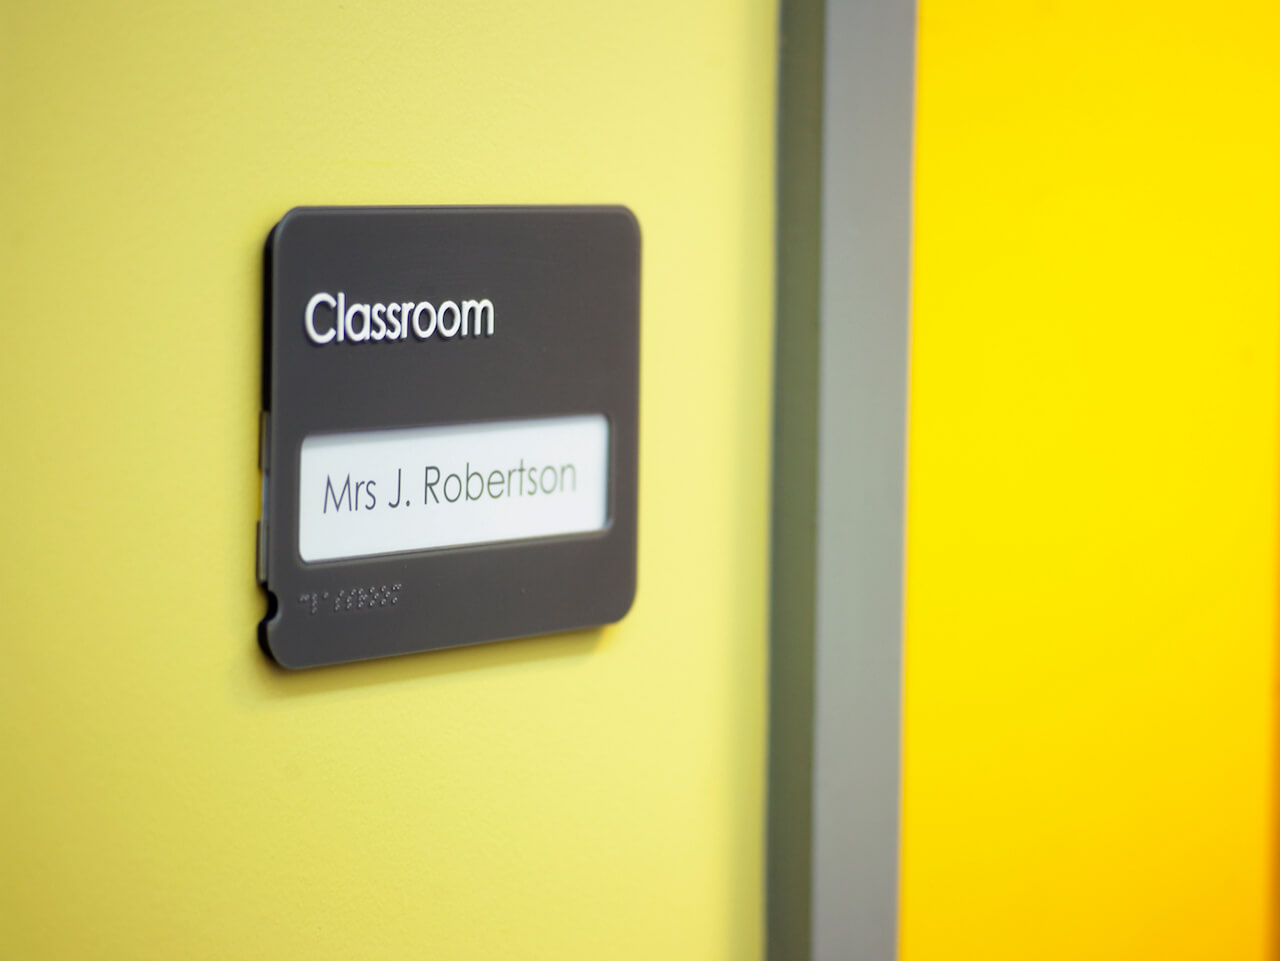 Classroom signage with paper inserts and Braille